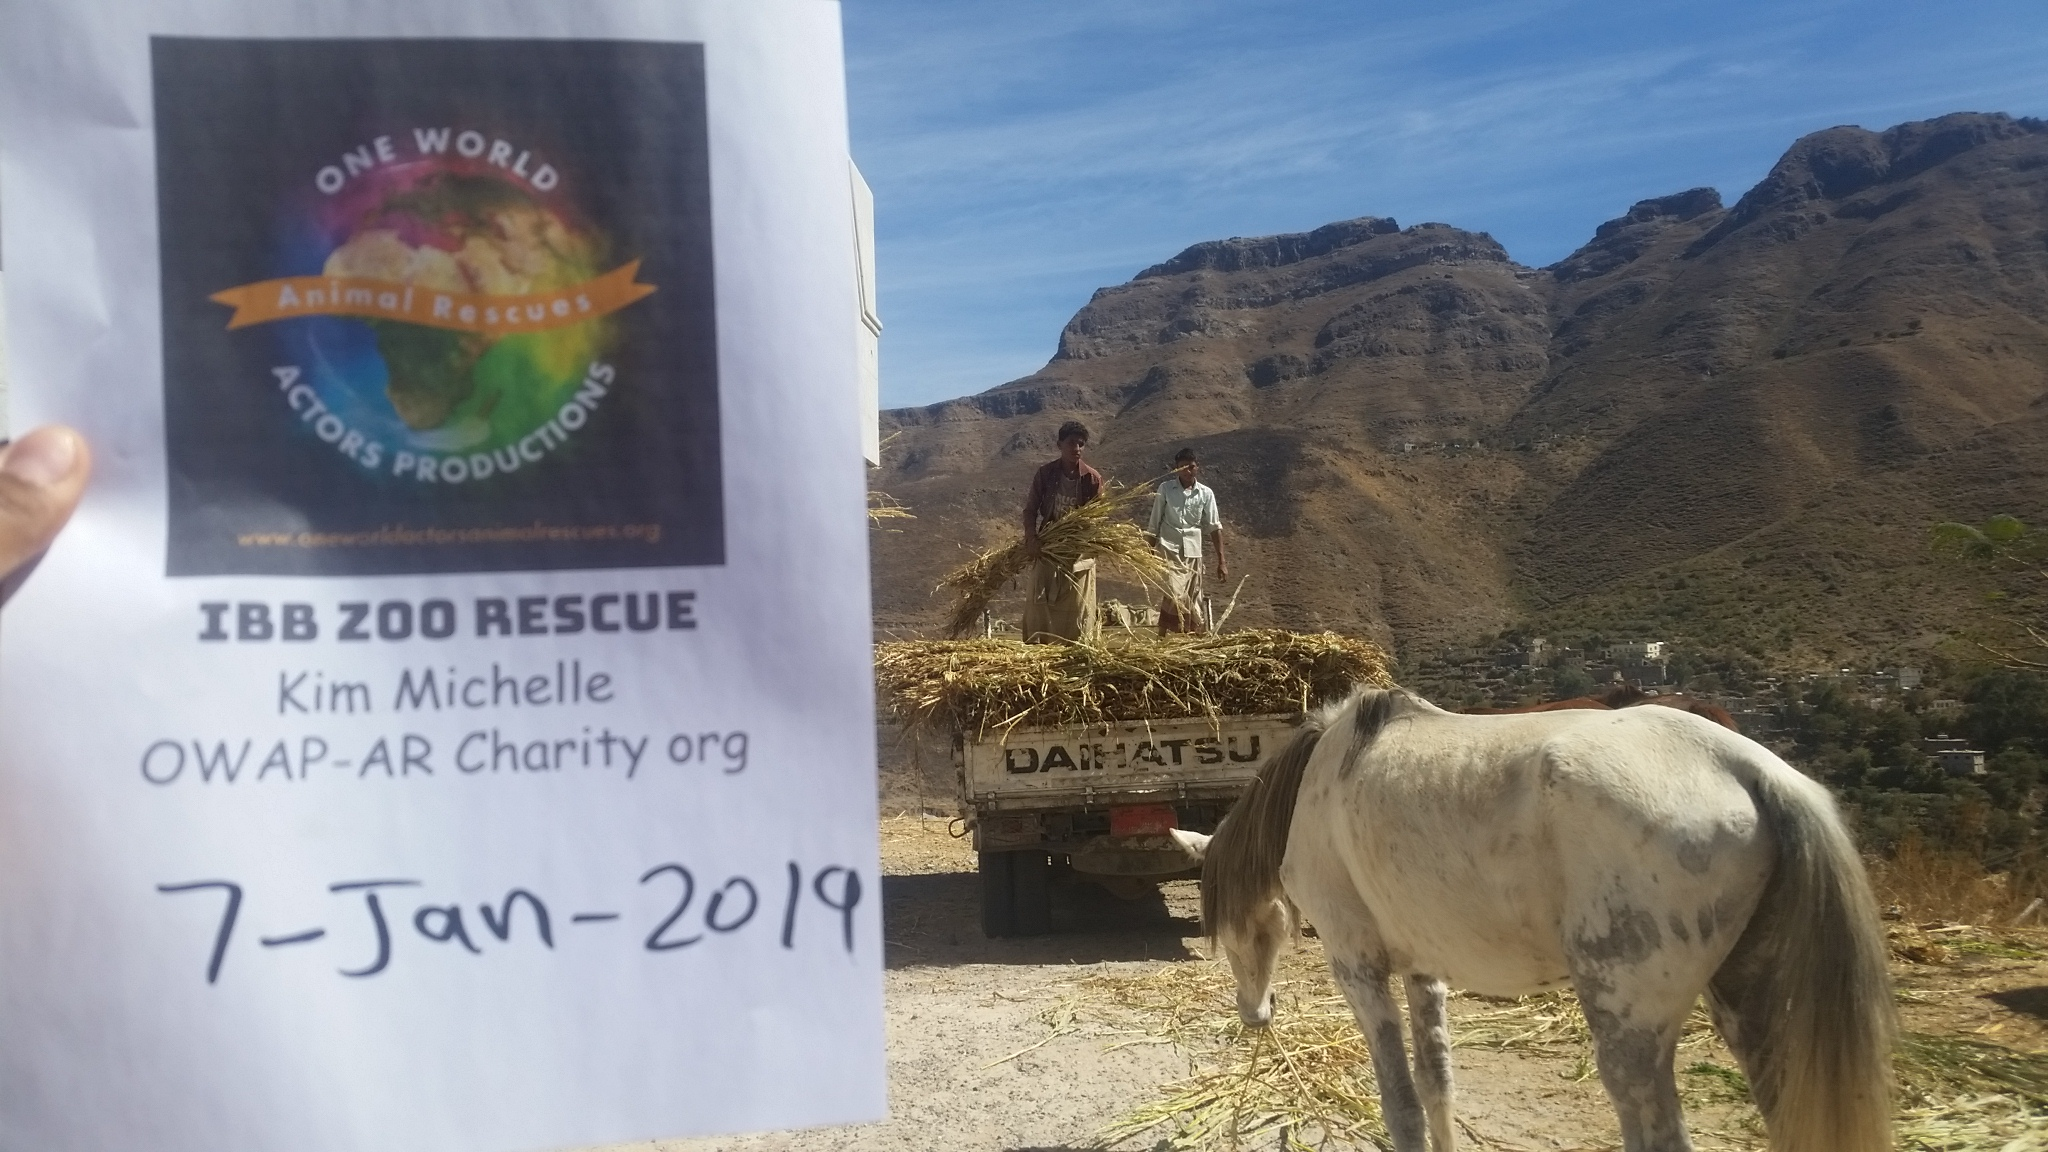 ibb zoo 7 JAN 2019 OWAP AR sign Horse with our corn stick delivery arriving unloading.jpg